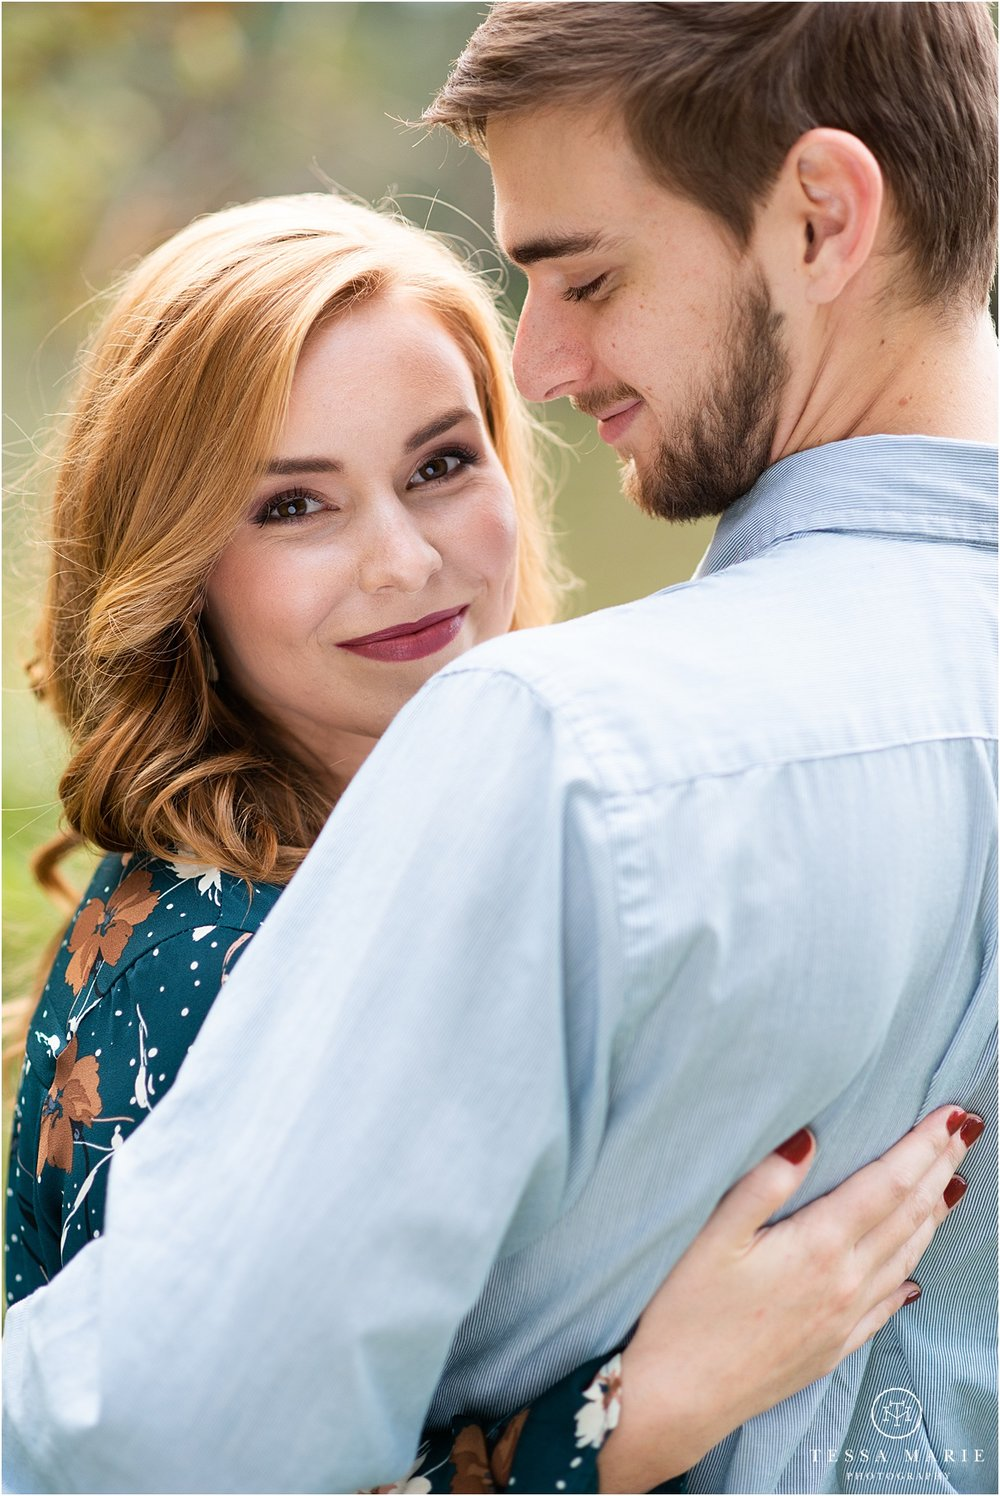 Tessa_marie_photography_wedding_photographer_engagement_pictures_river_engagement_0006.jpg